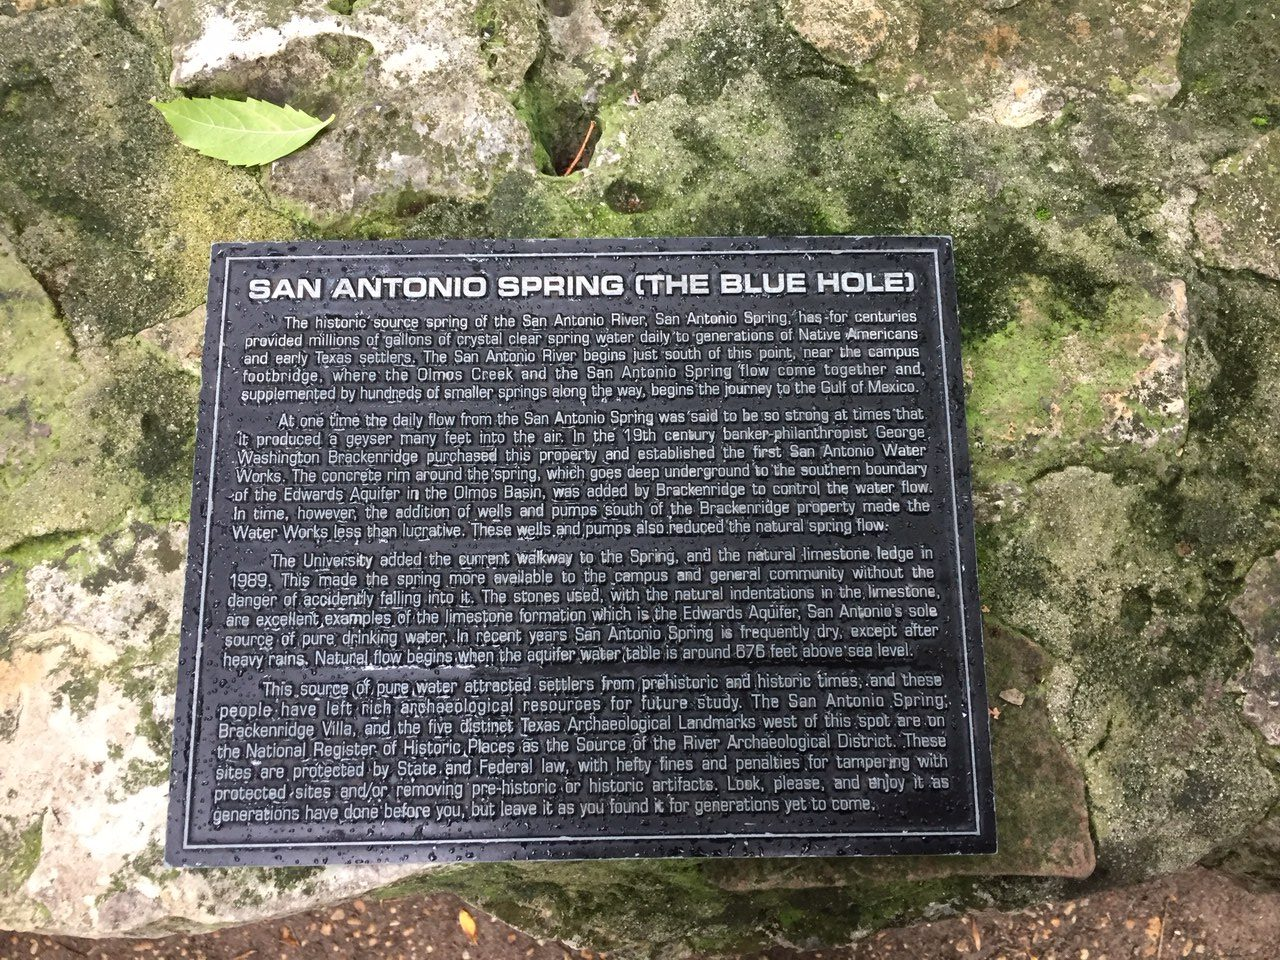 Sign tells story about the Blue Hole